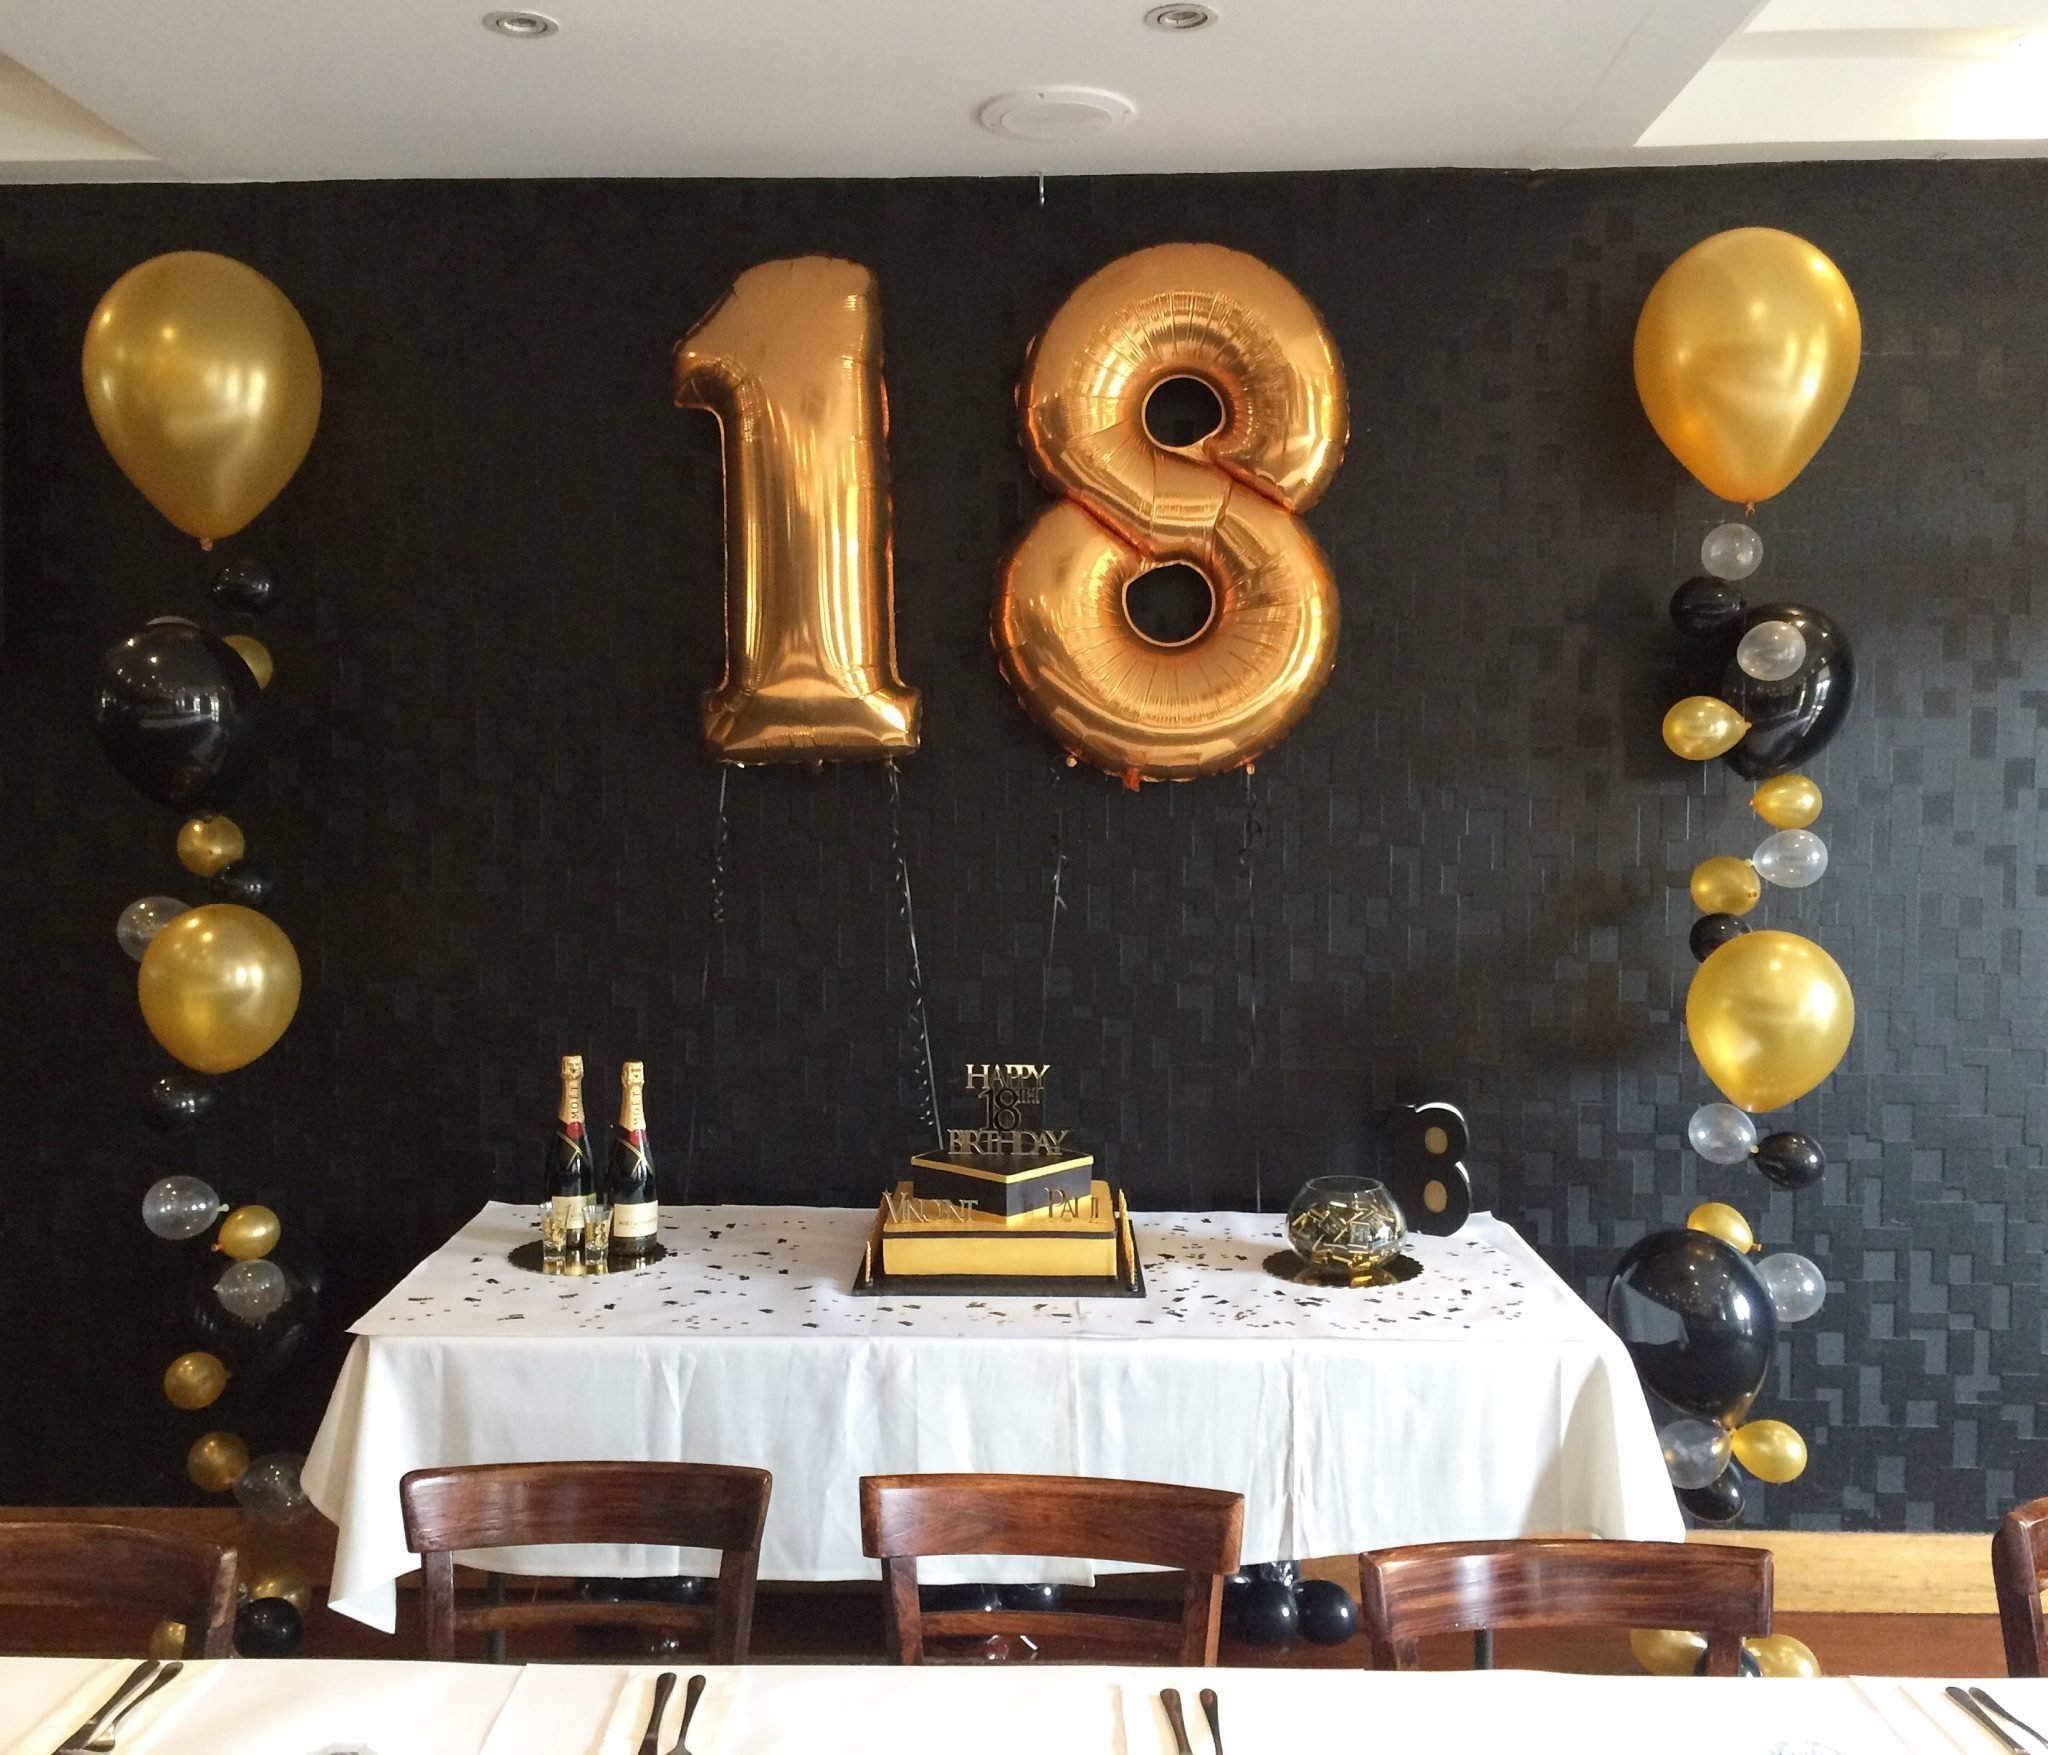 10 Most Recommended Black And Gold Centerpiece Ideas colors black and gold birthday party decor with black and gold 2020